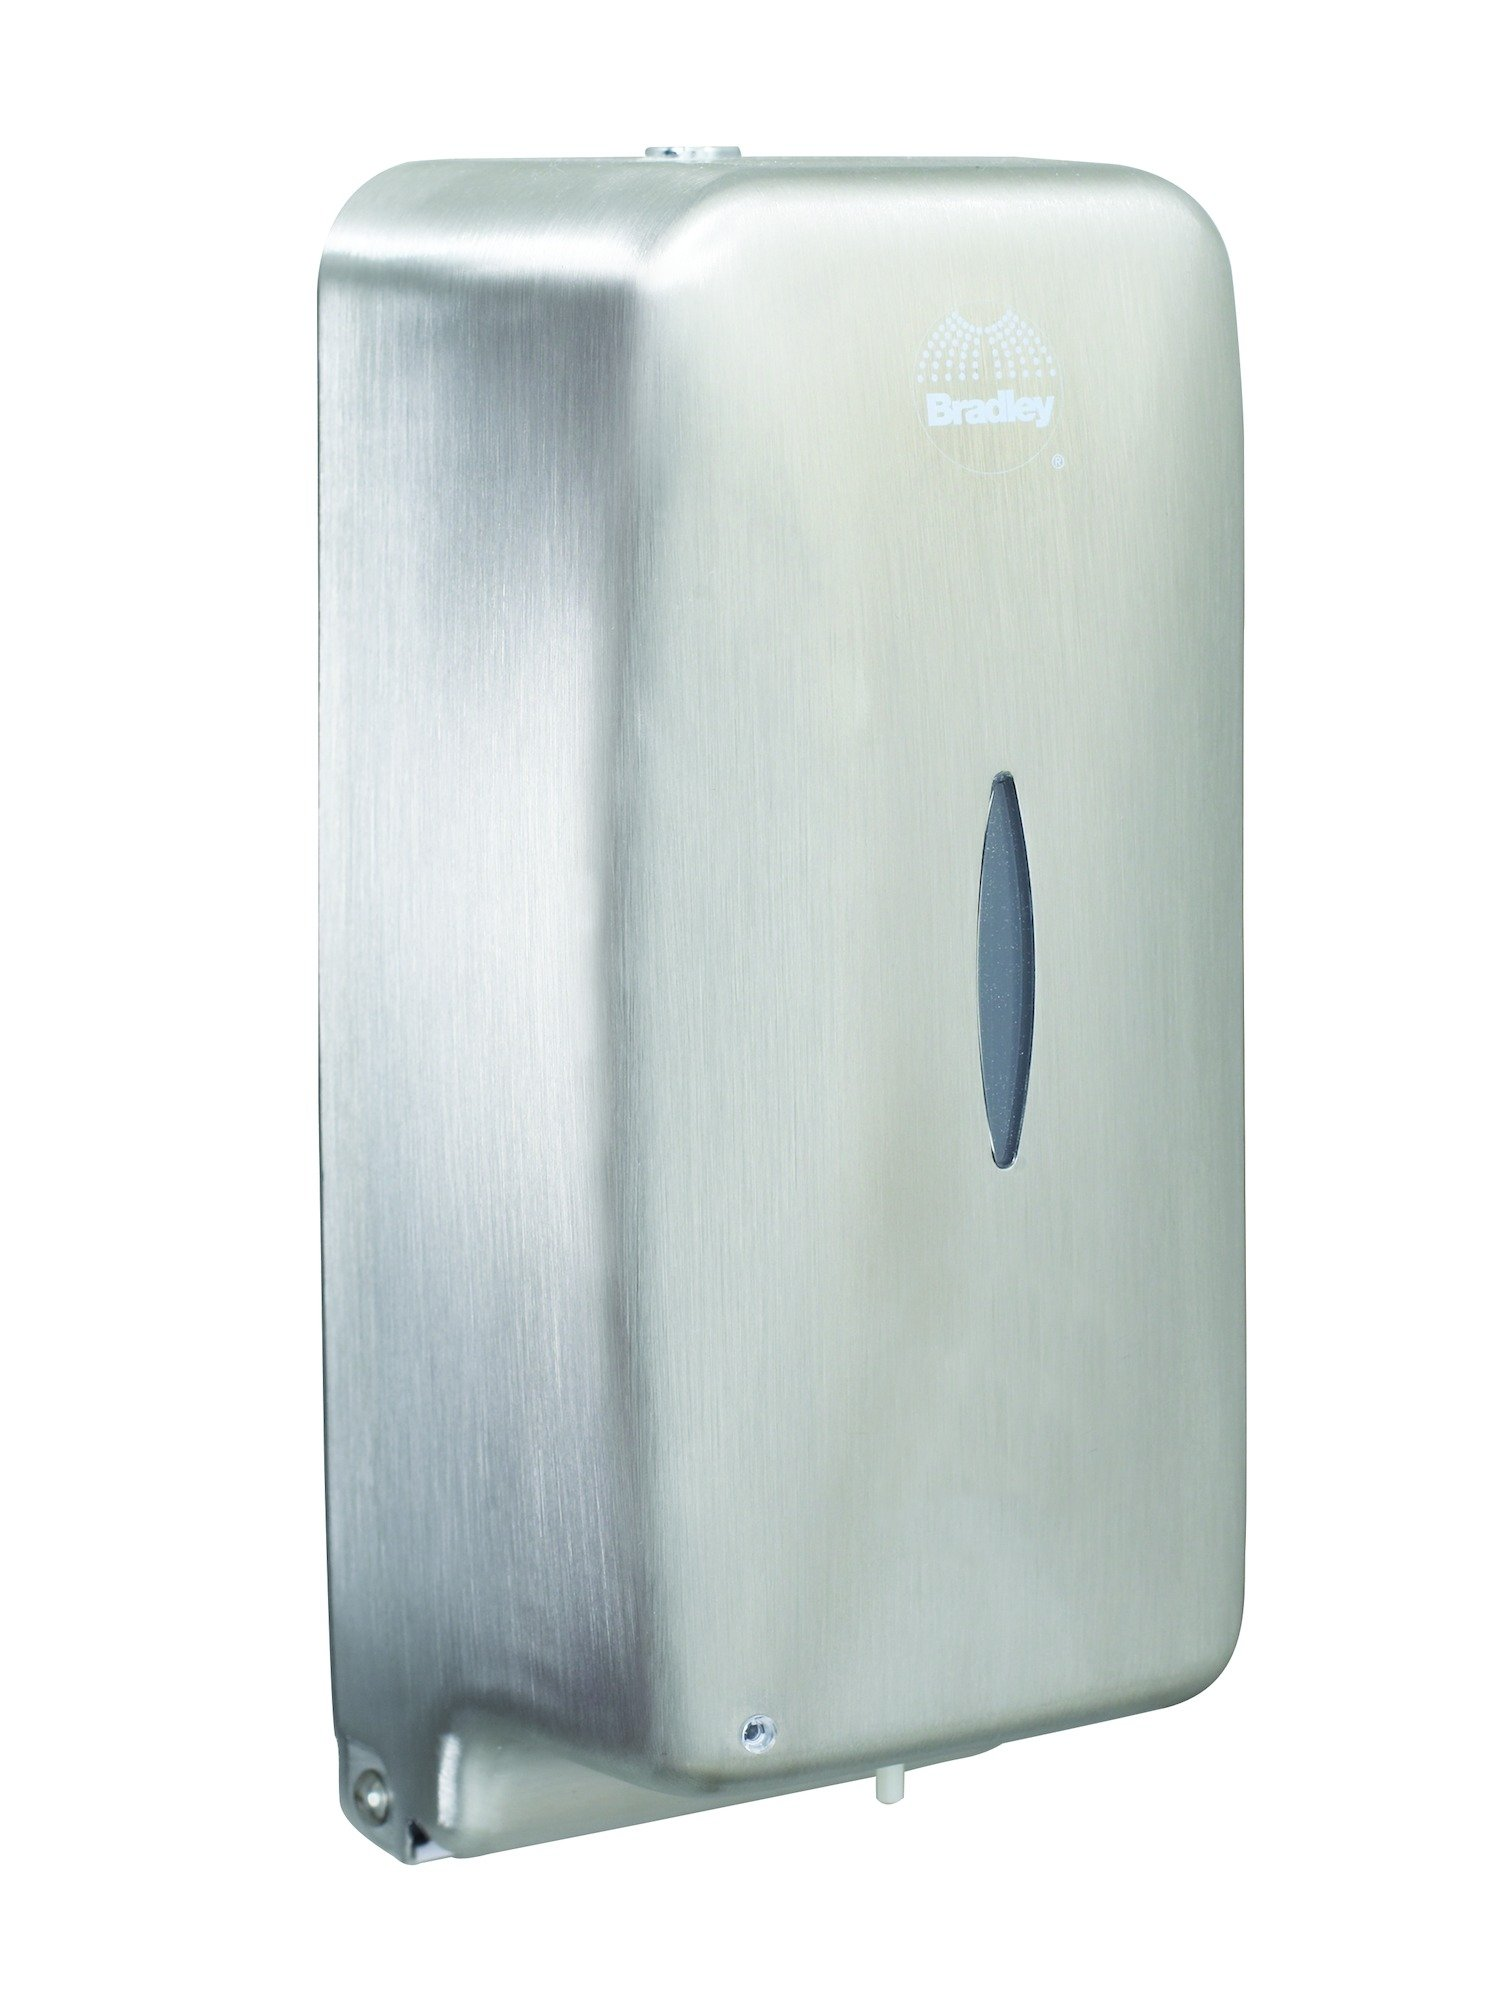 Wall Mounted Automatic Soap Dispenser 6A00-11 | Accurate Door & Hardware, Inc